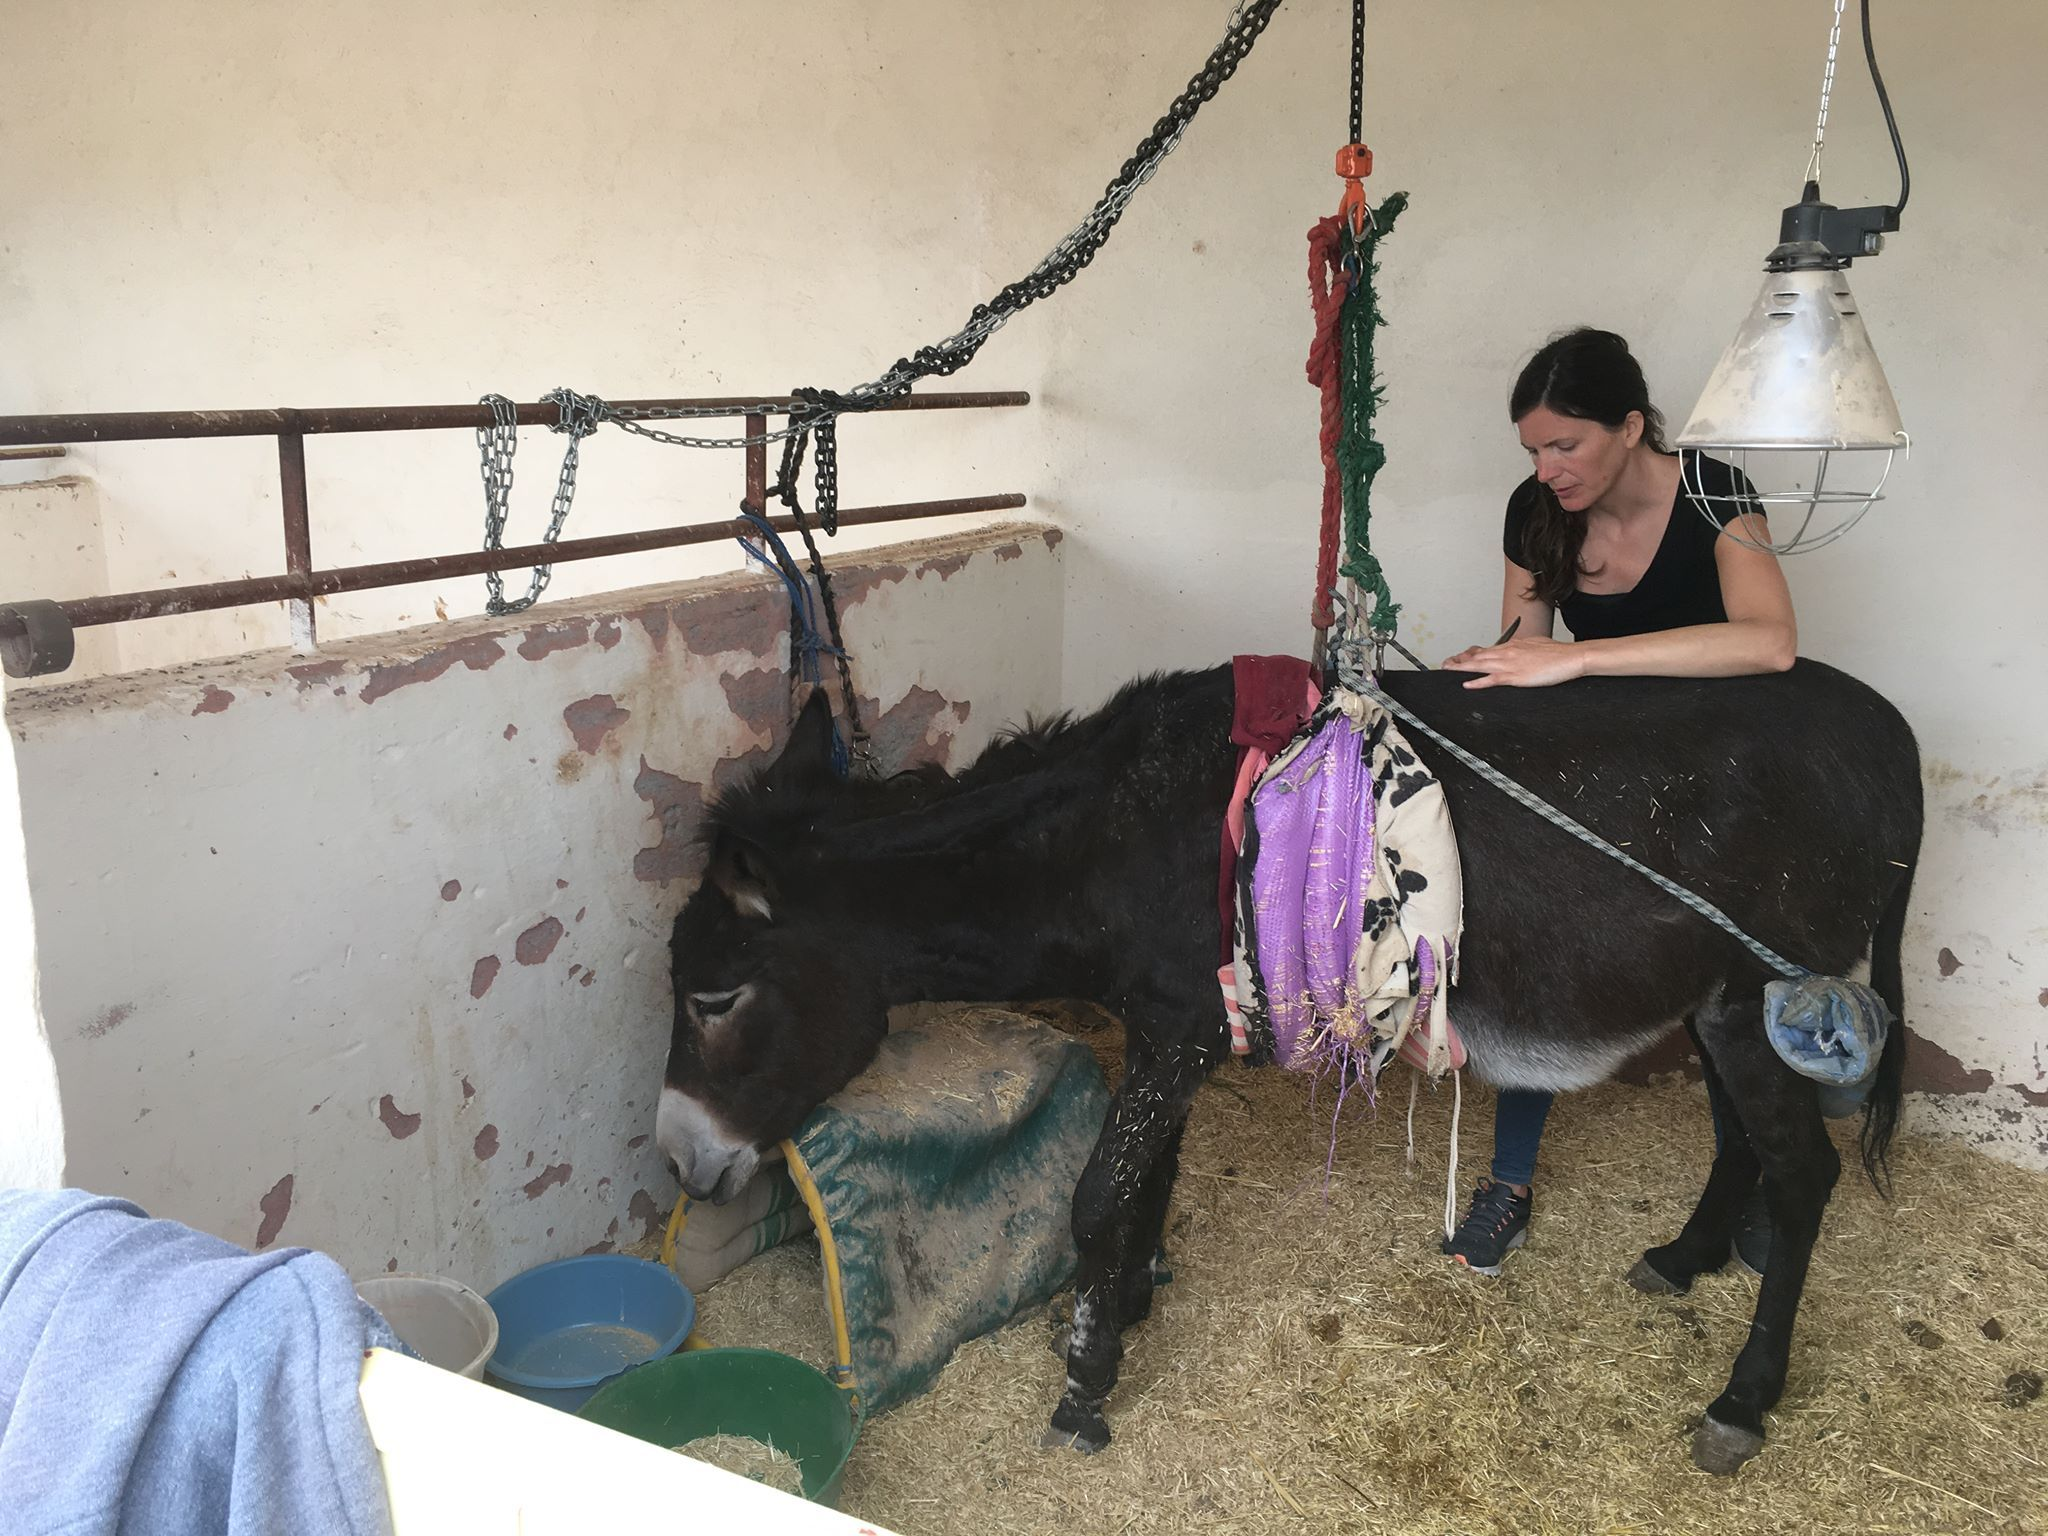 Sarah Wilkinson took time out of her holiday in Morocco to help nurse Julie the donkey back to health